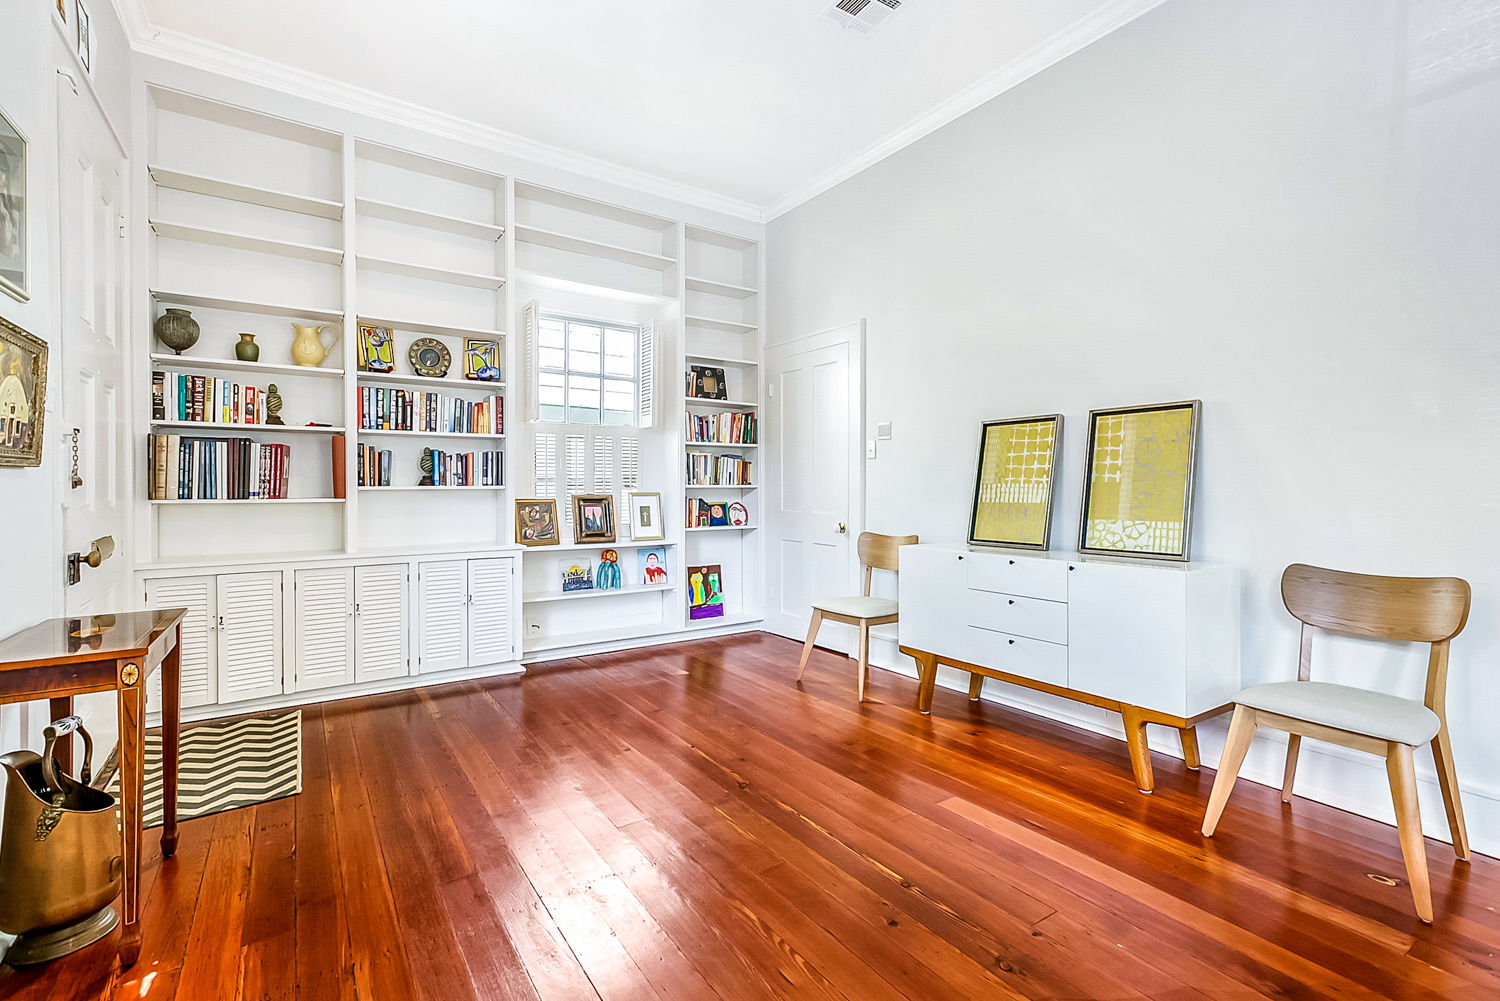 Garden District, House, 2 beds, 2.0 baths, $5500 per month New Orleans Rental - devie image_2